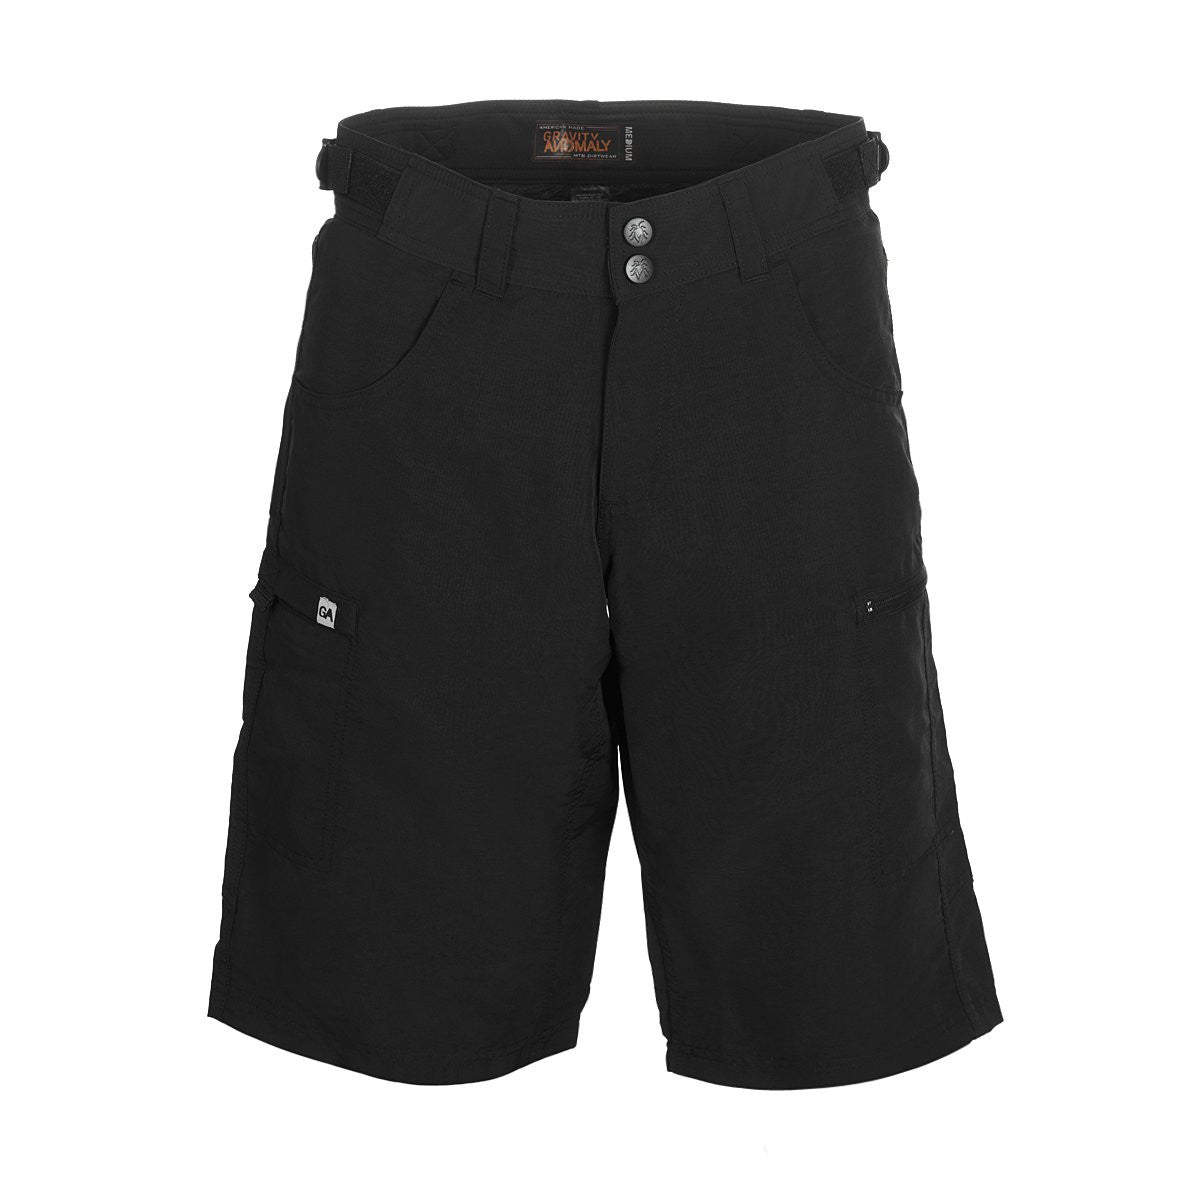 Disrupter Bike Shorts Black